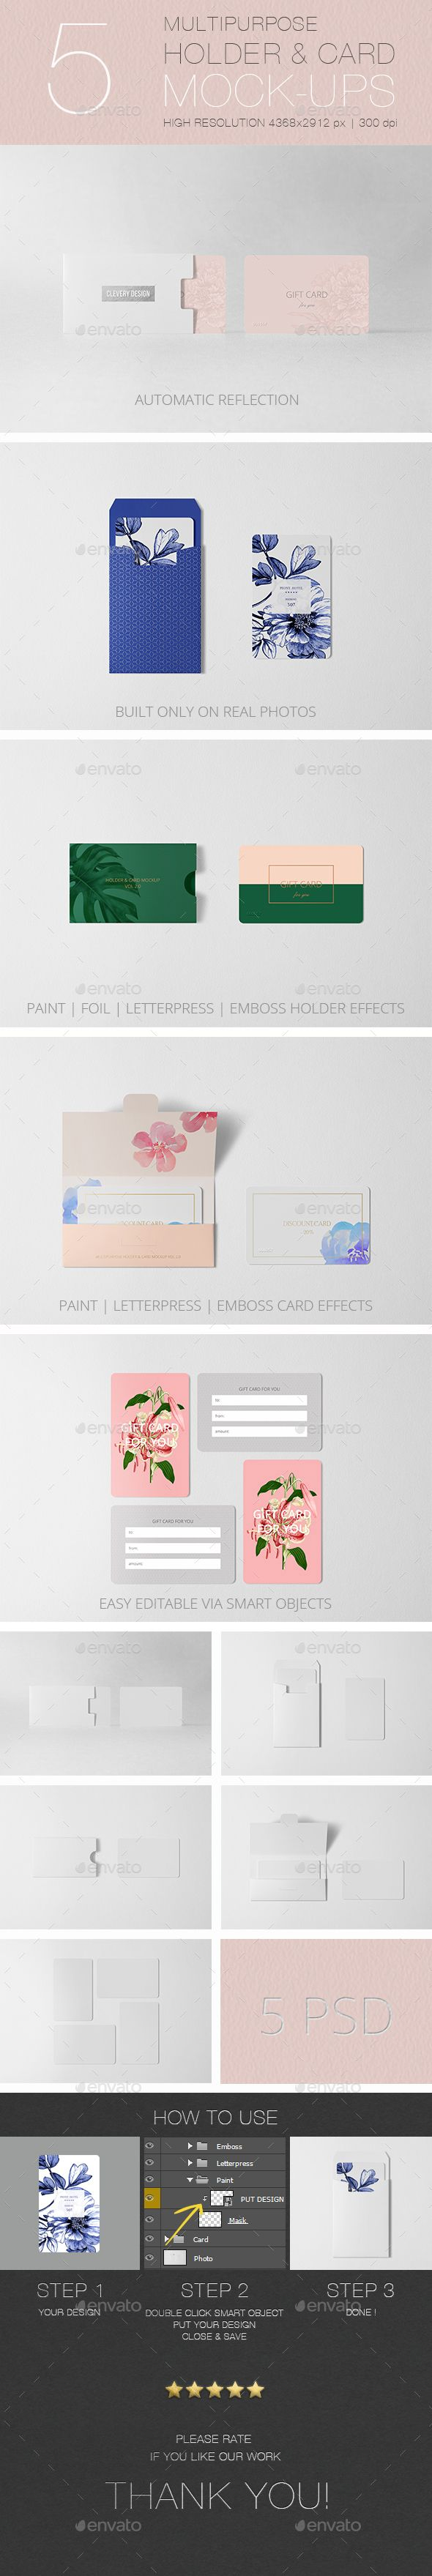 209 best Business cards images on Pinterest